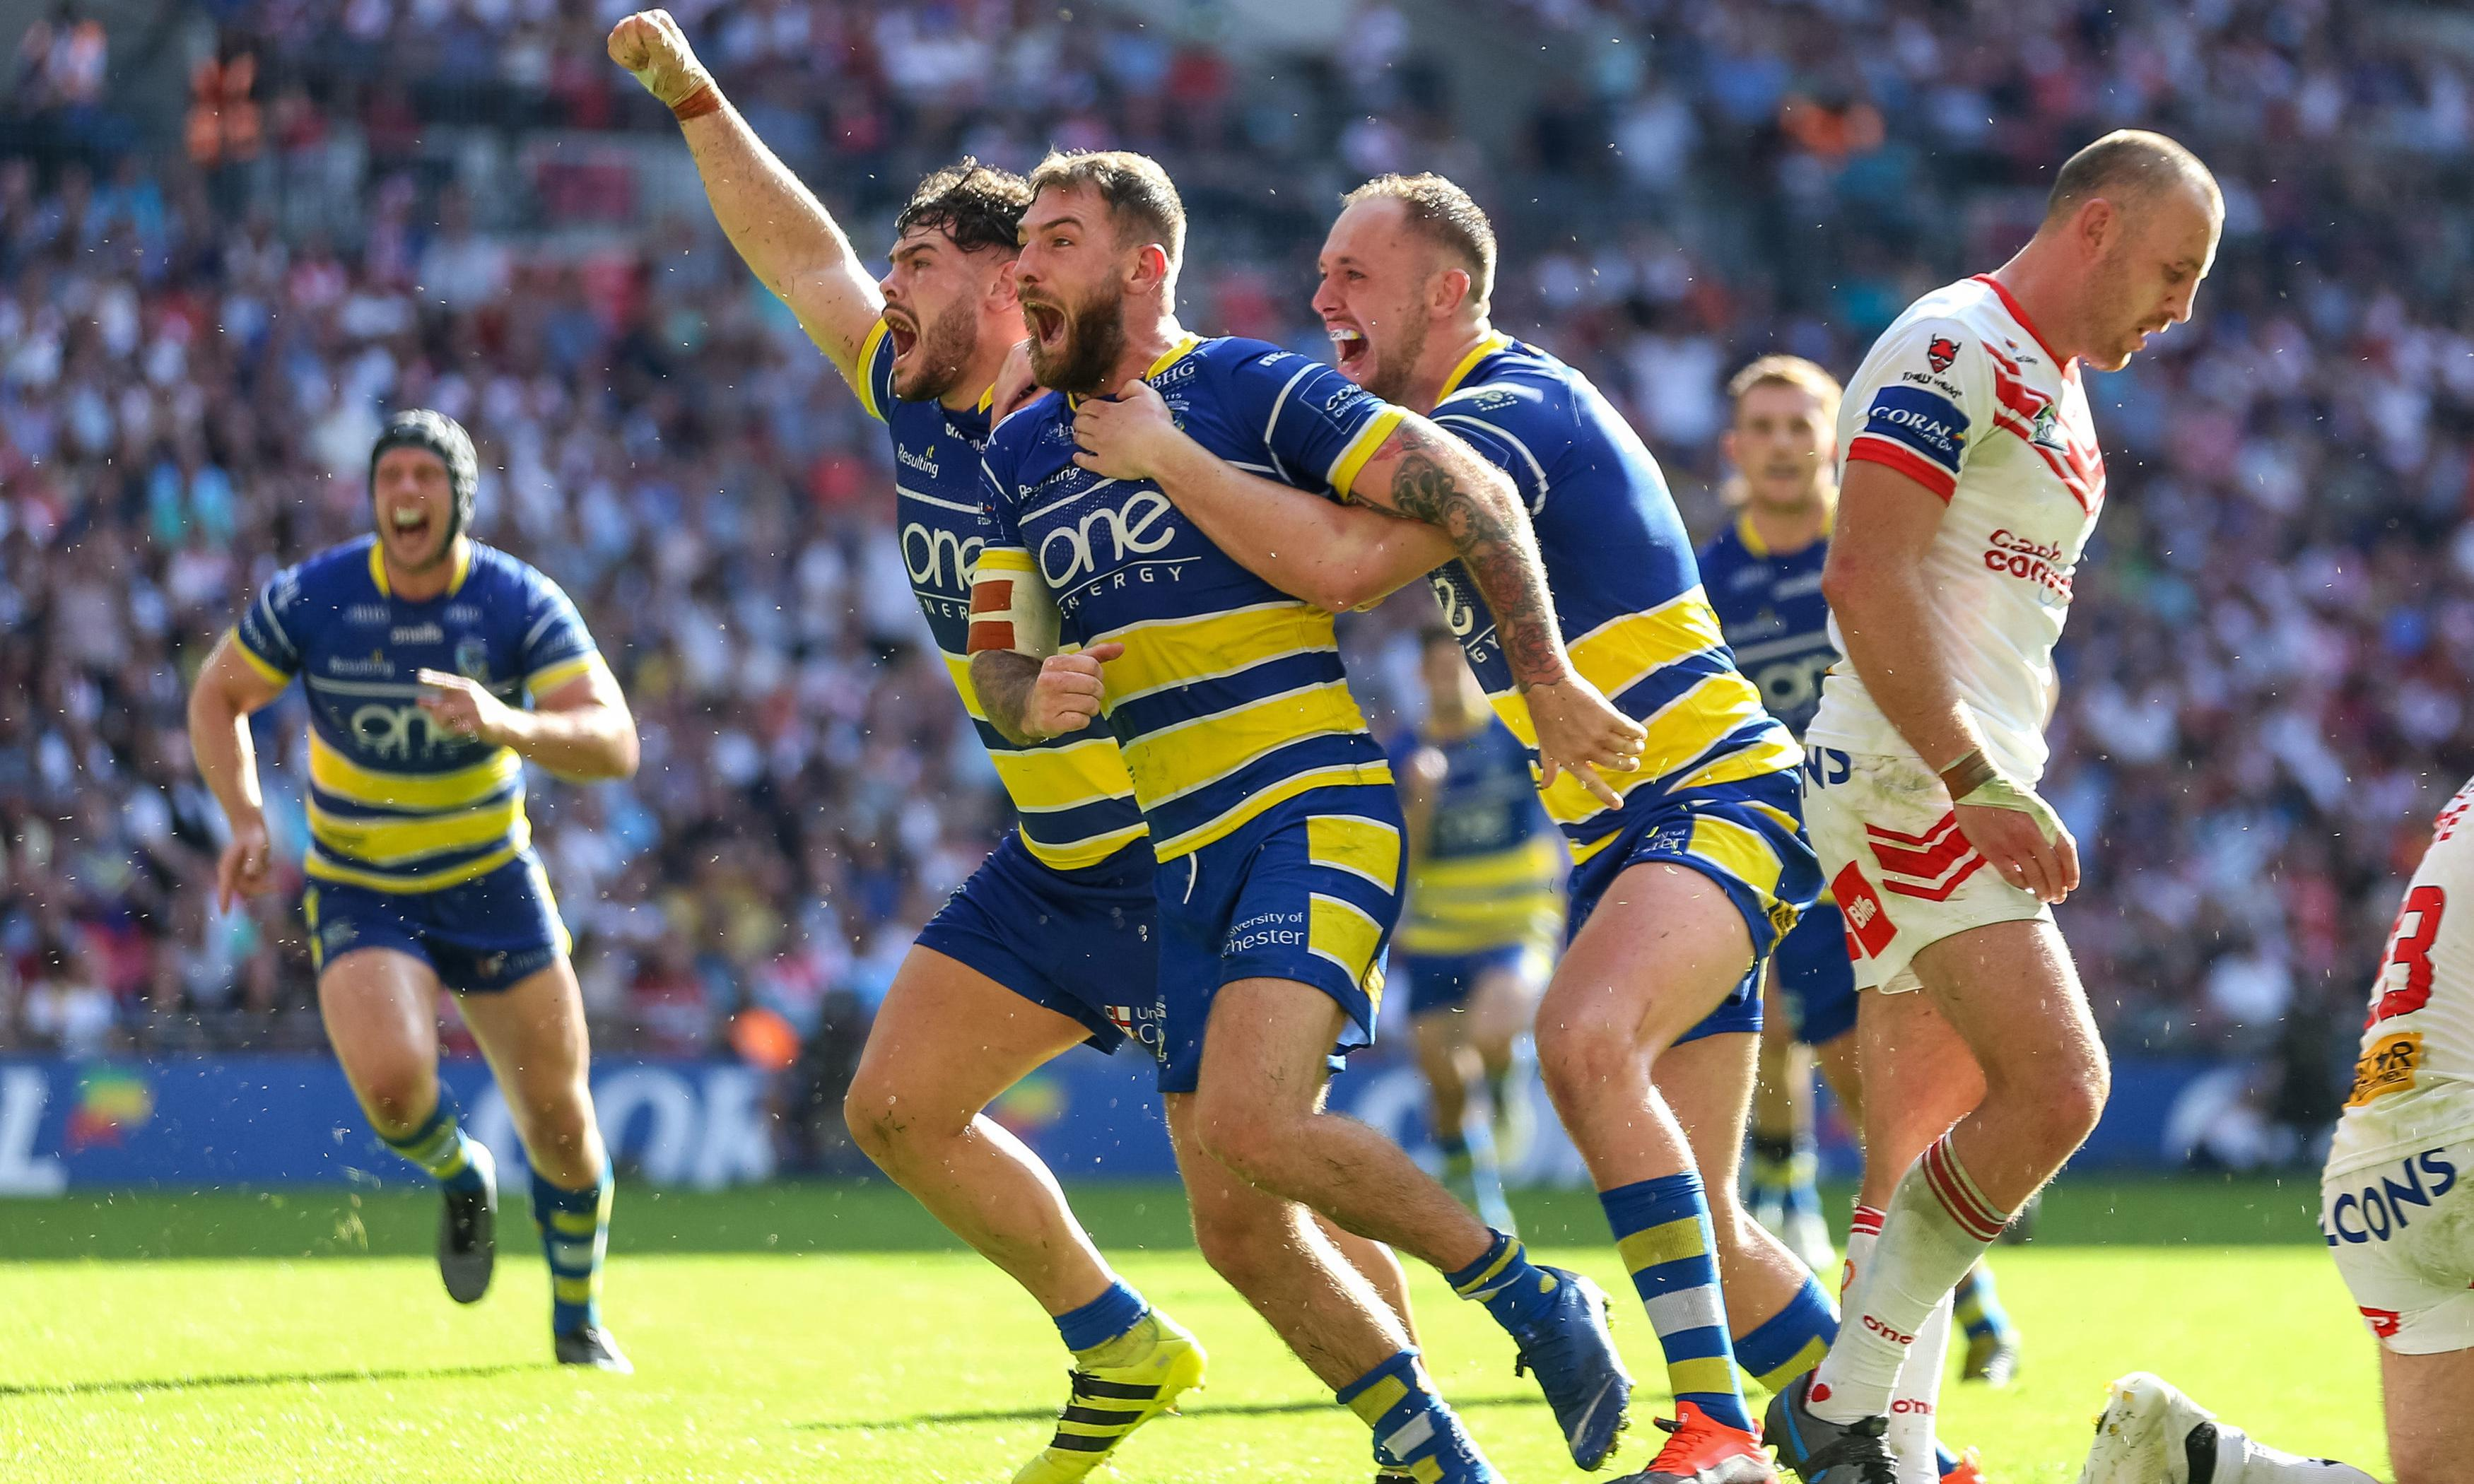 Warrington feast on St Helens errors to seal shock Challenge Cup triumph